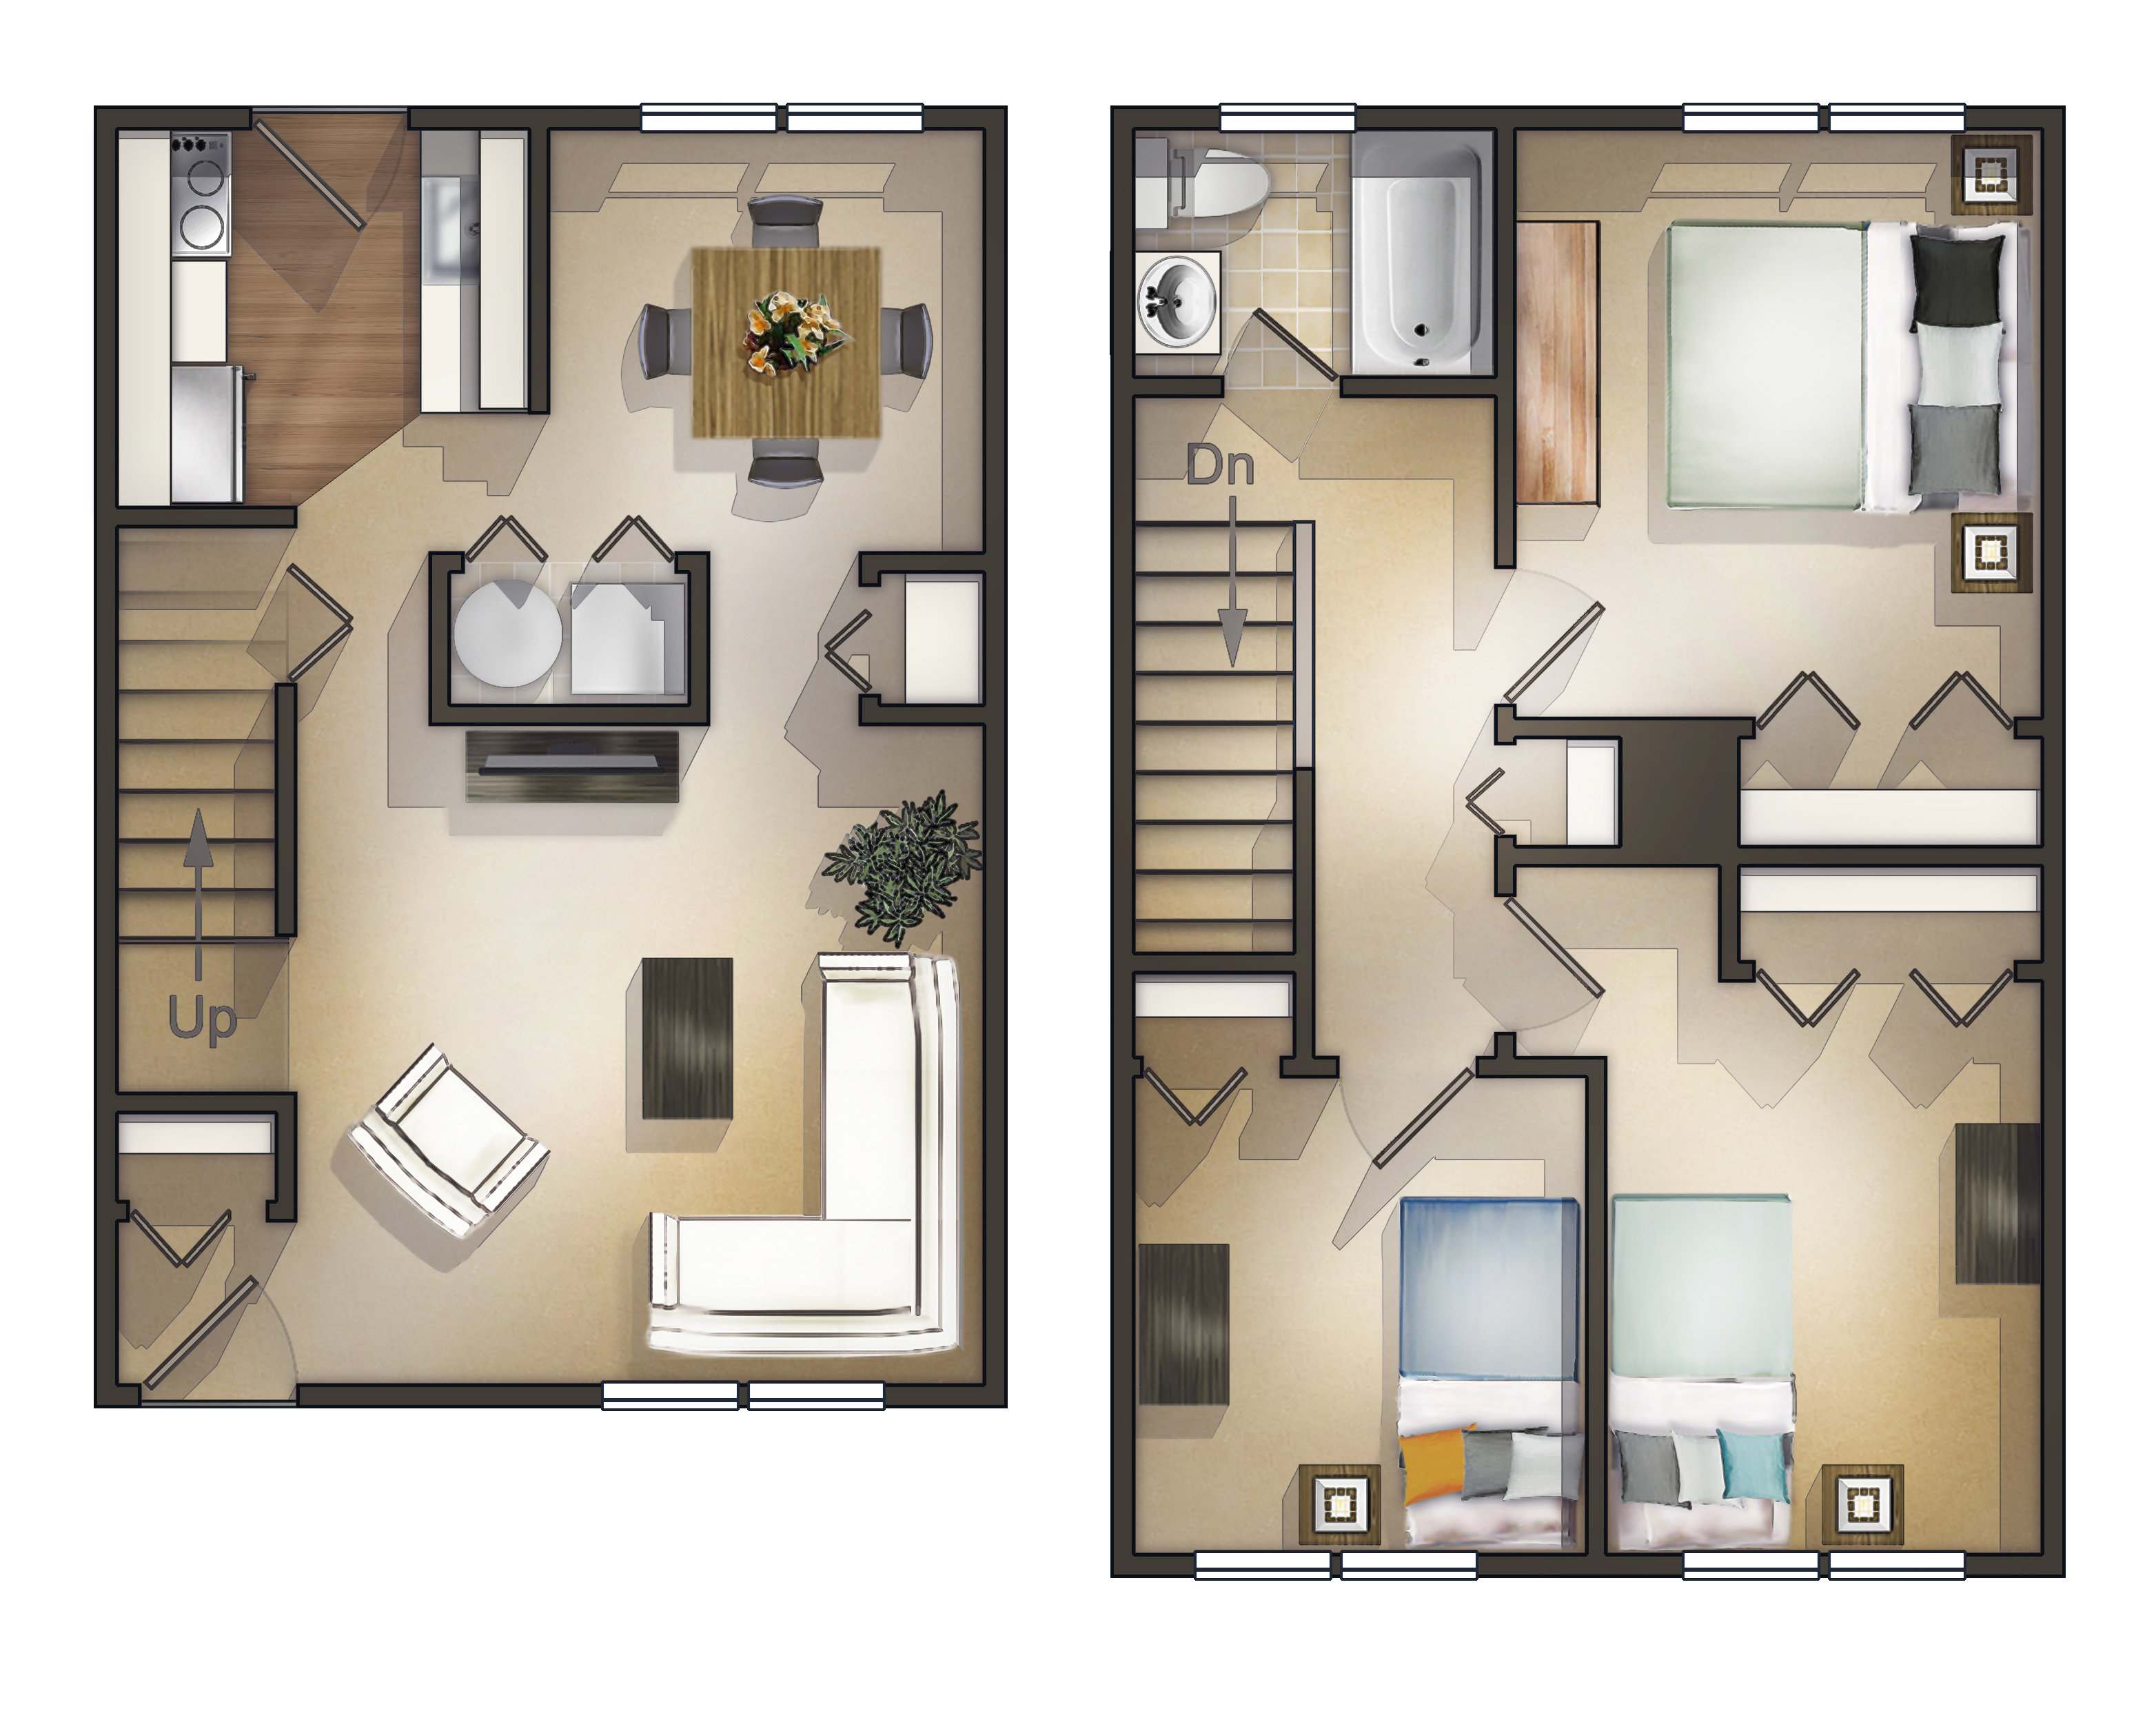 3 Bedroom Townhouse Apartment Floorplan